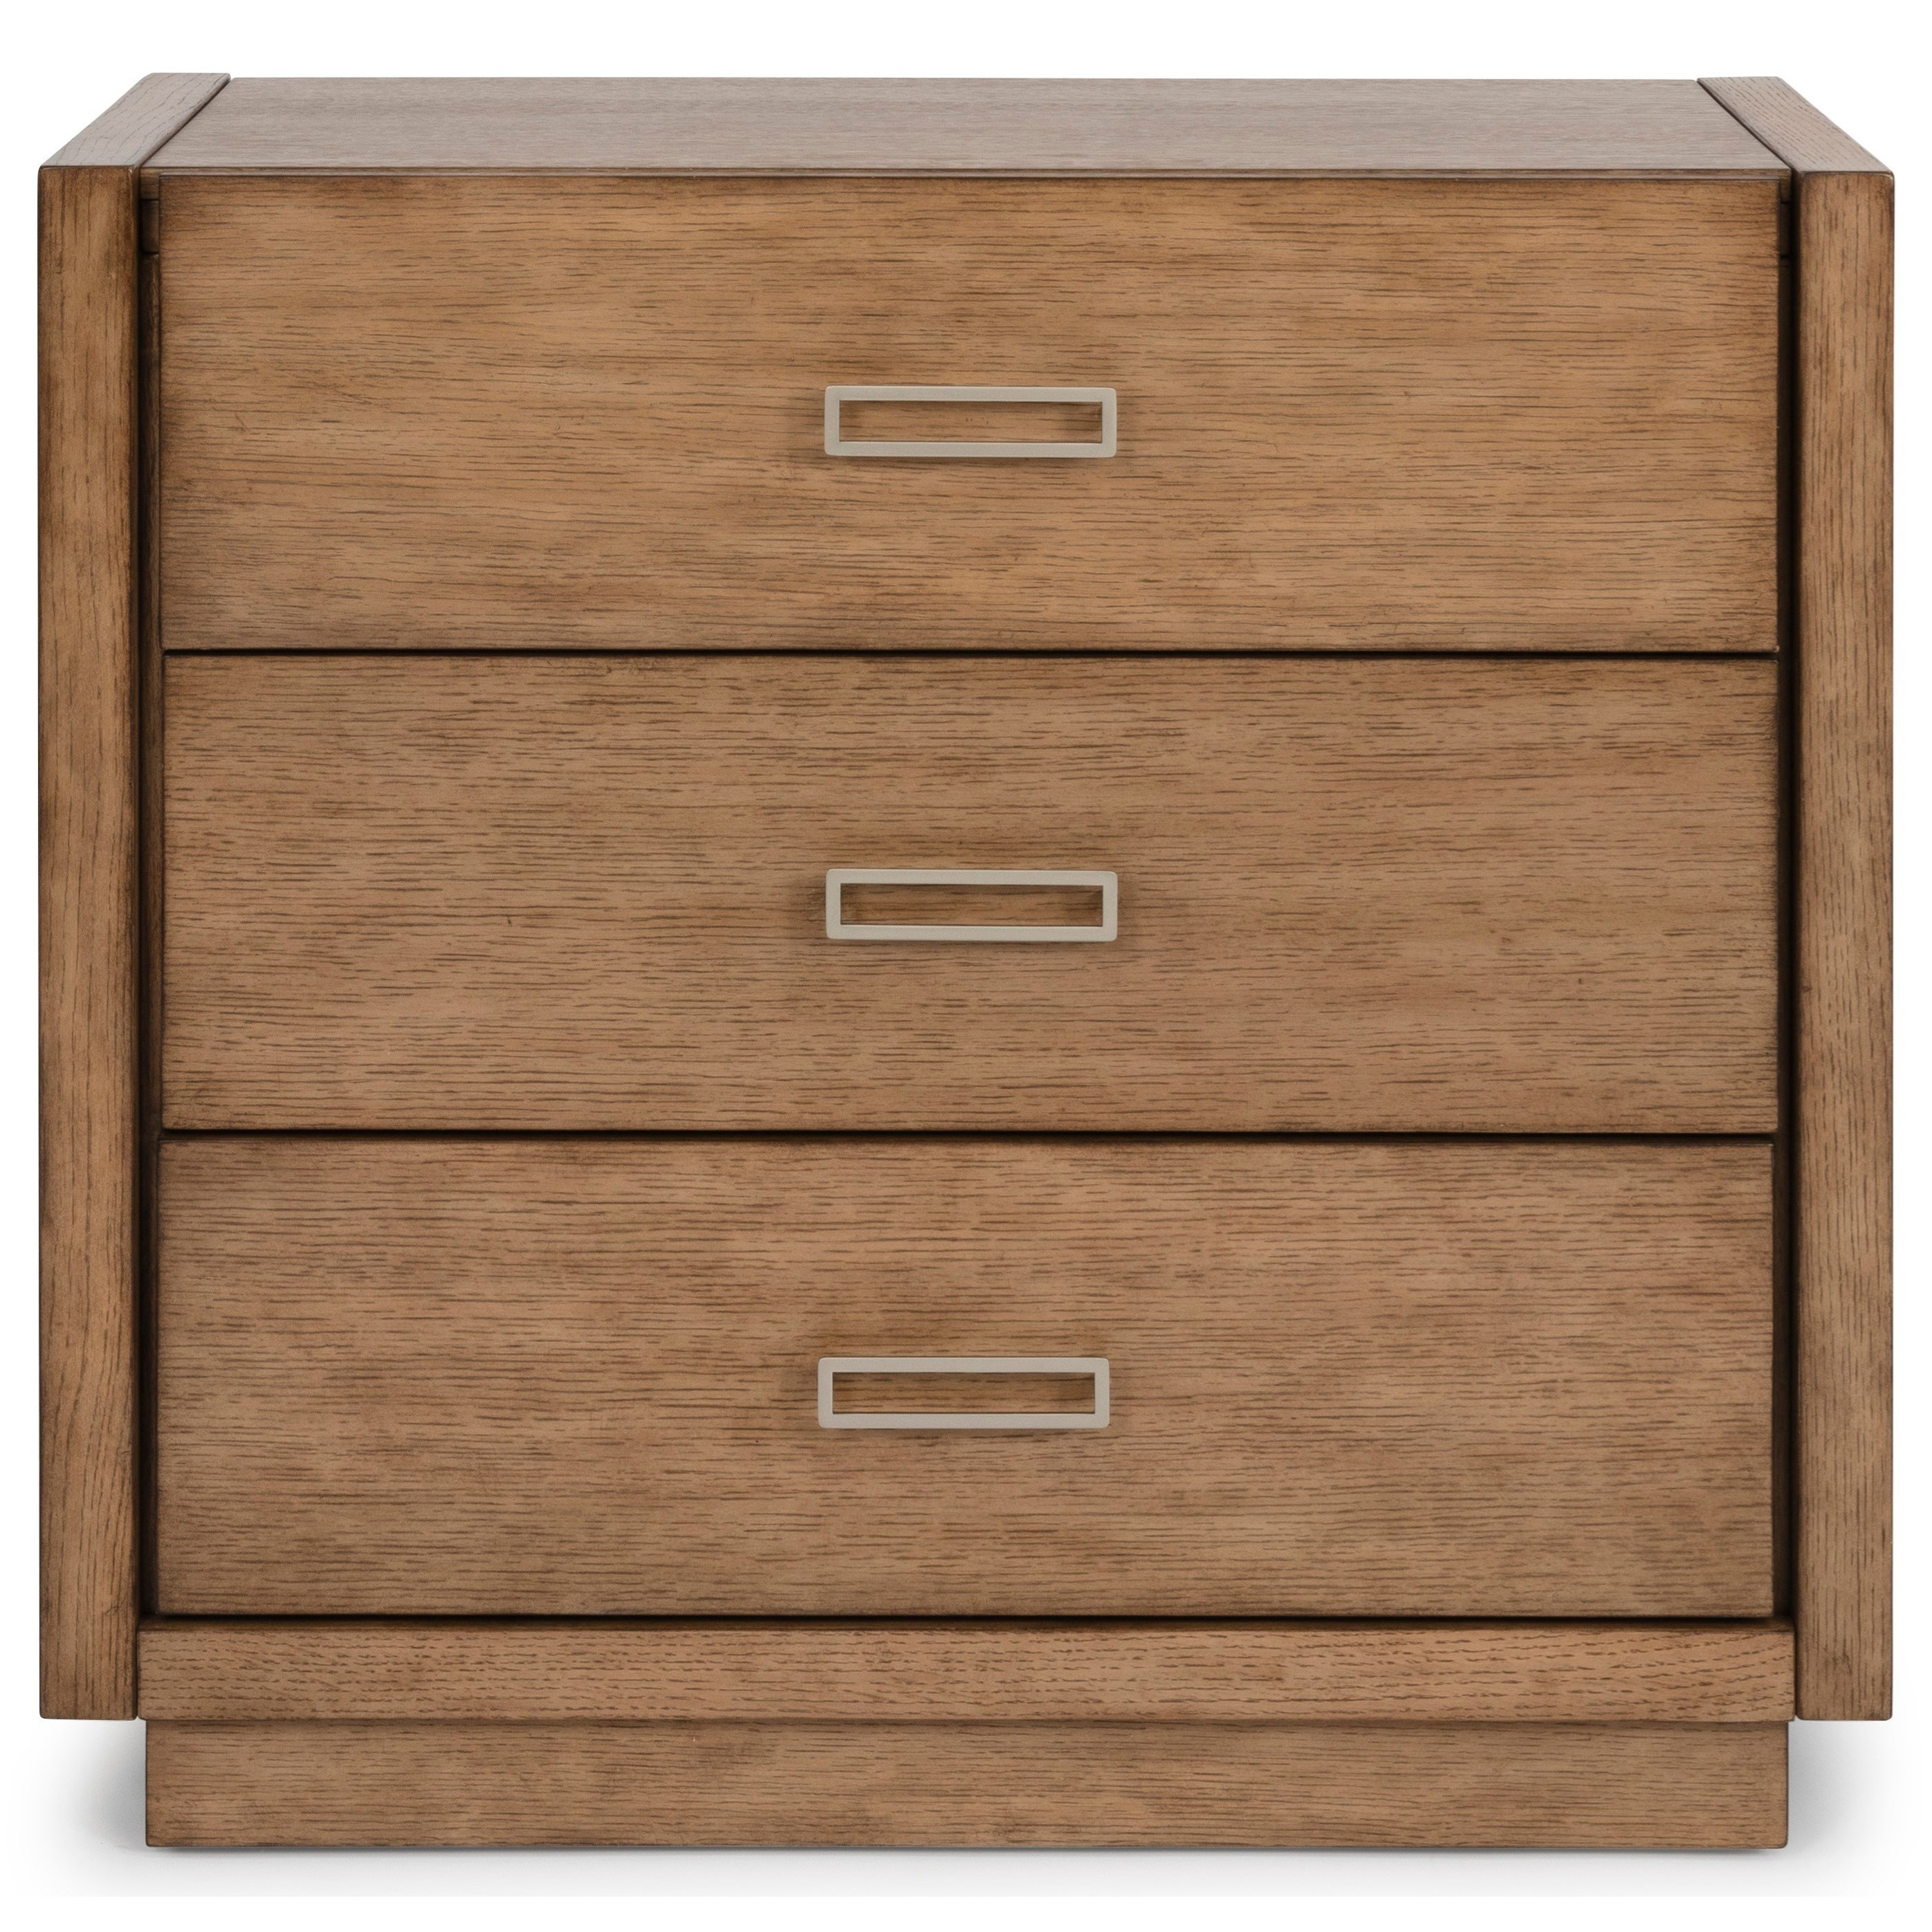 Big Sur Chest by Homestyles at Northeast Factory Direct